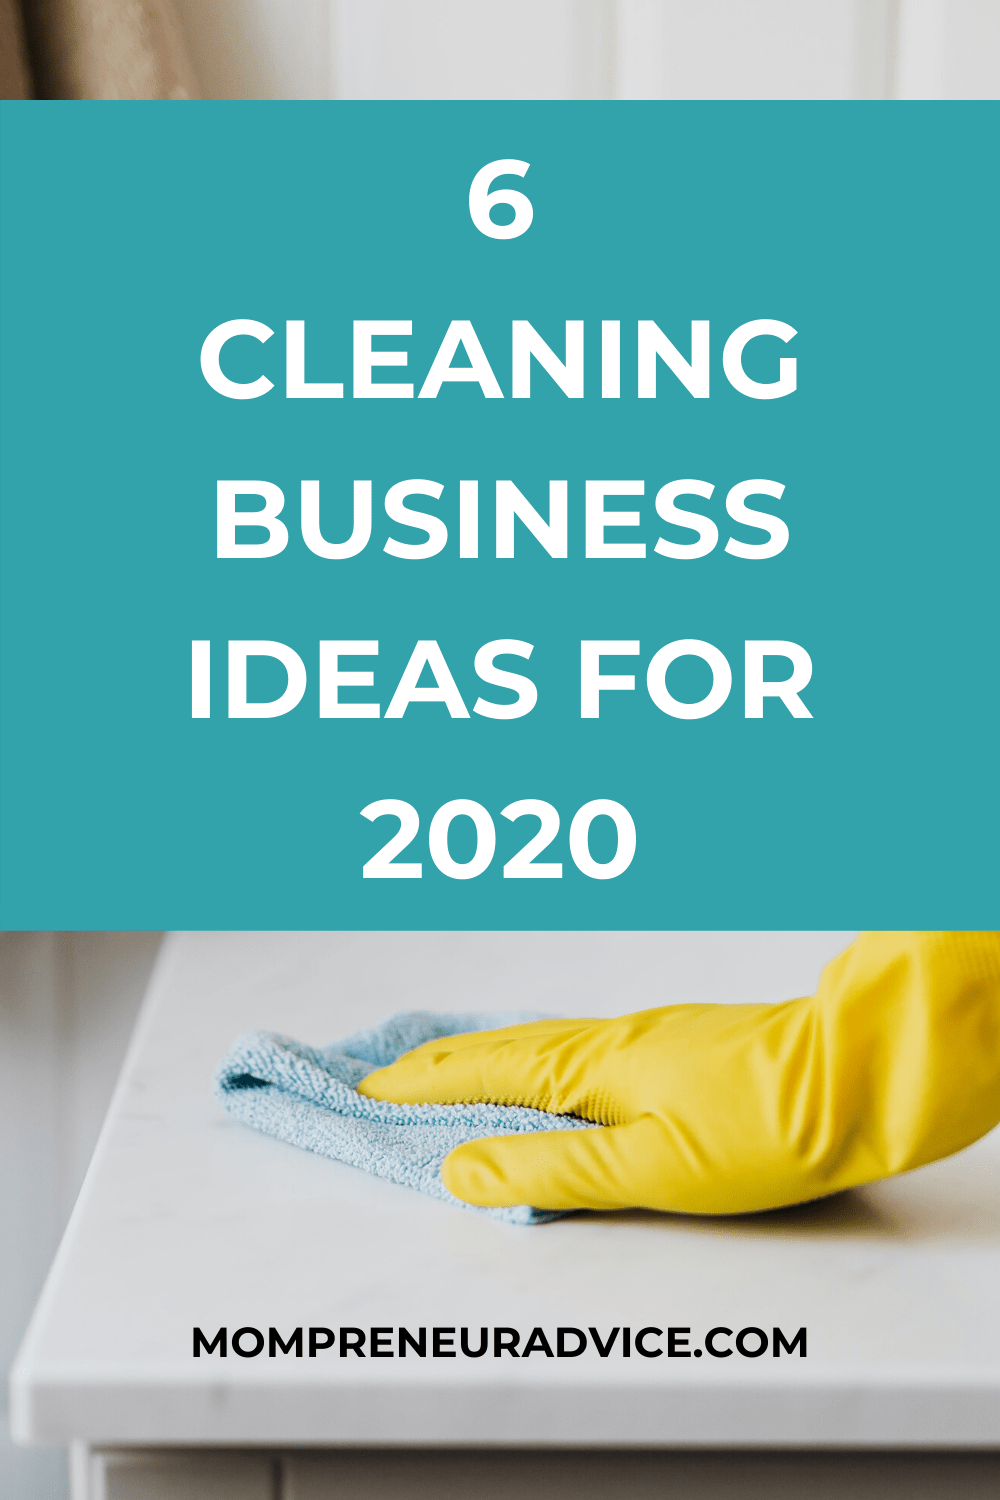 Here's 6 cleaning business ideas for 2020 - mompreneuradvice.com